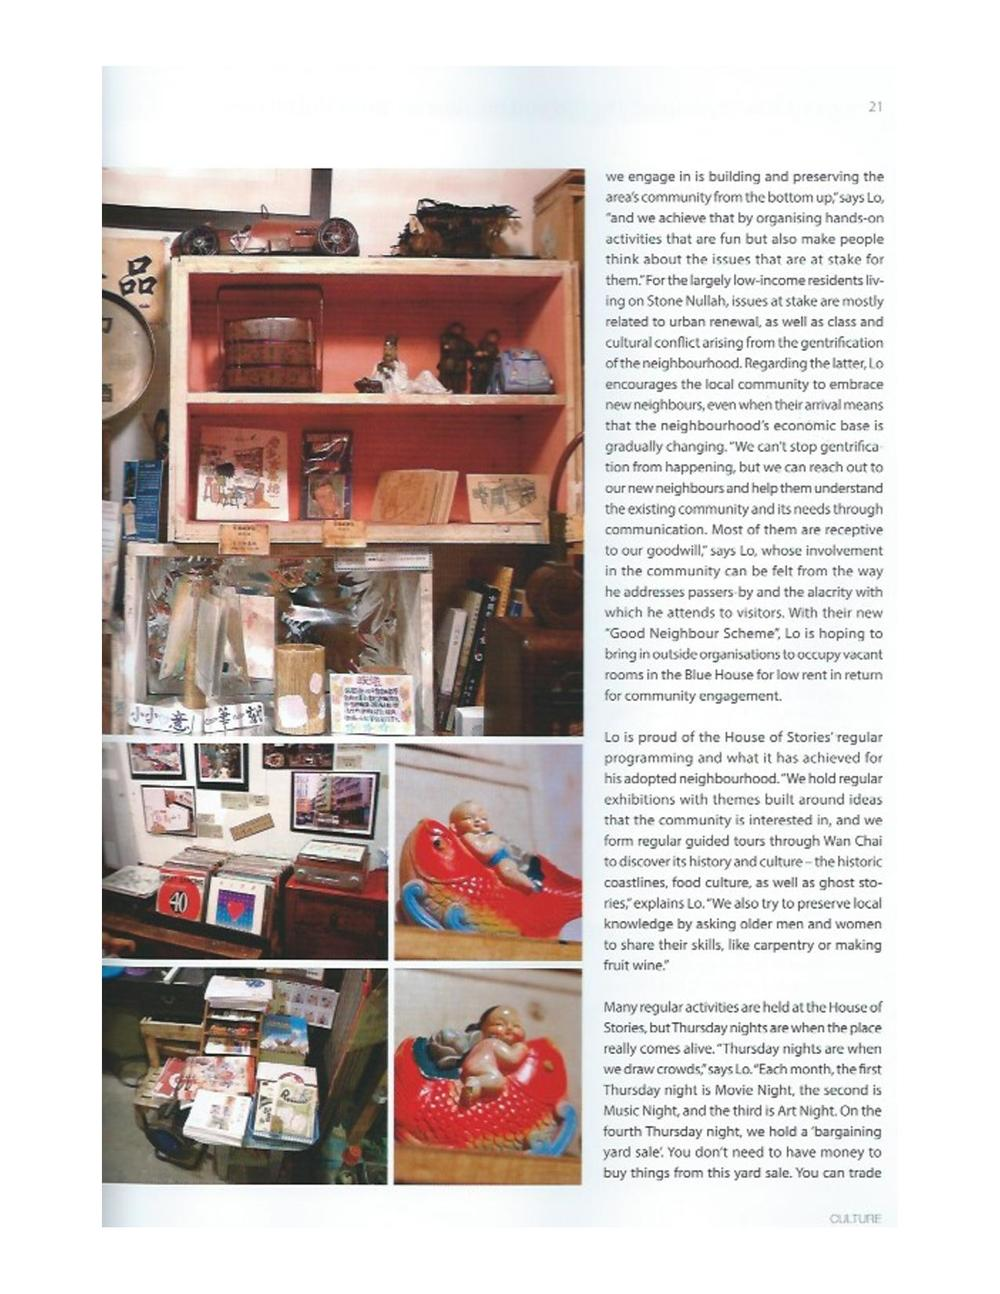 Stone Nullah Lane_CULTURE mag-page-003.jpg